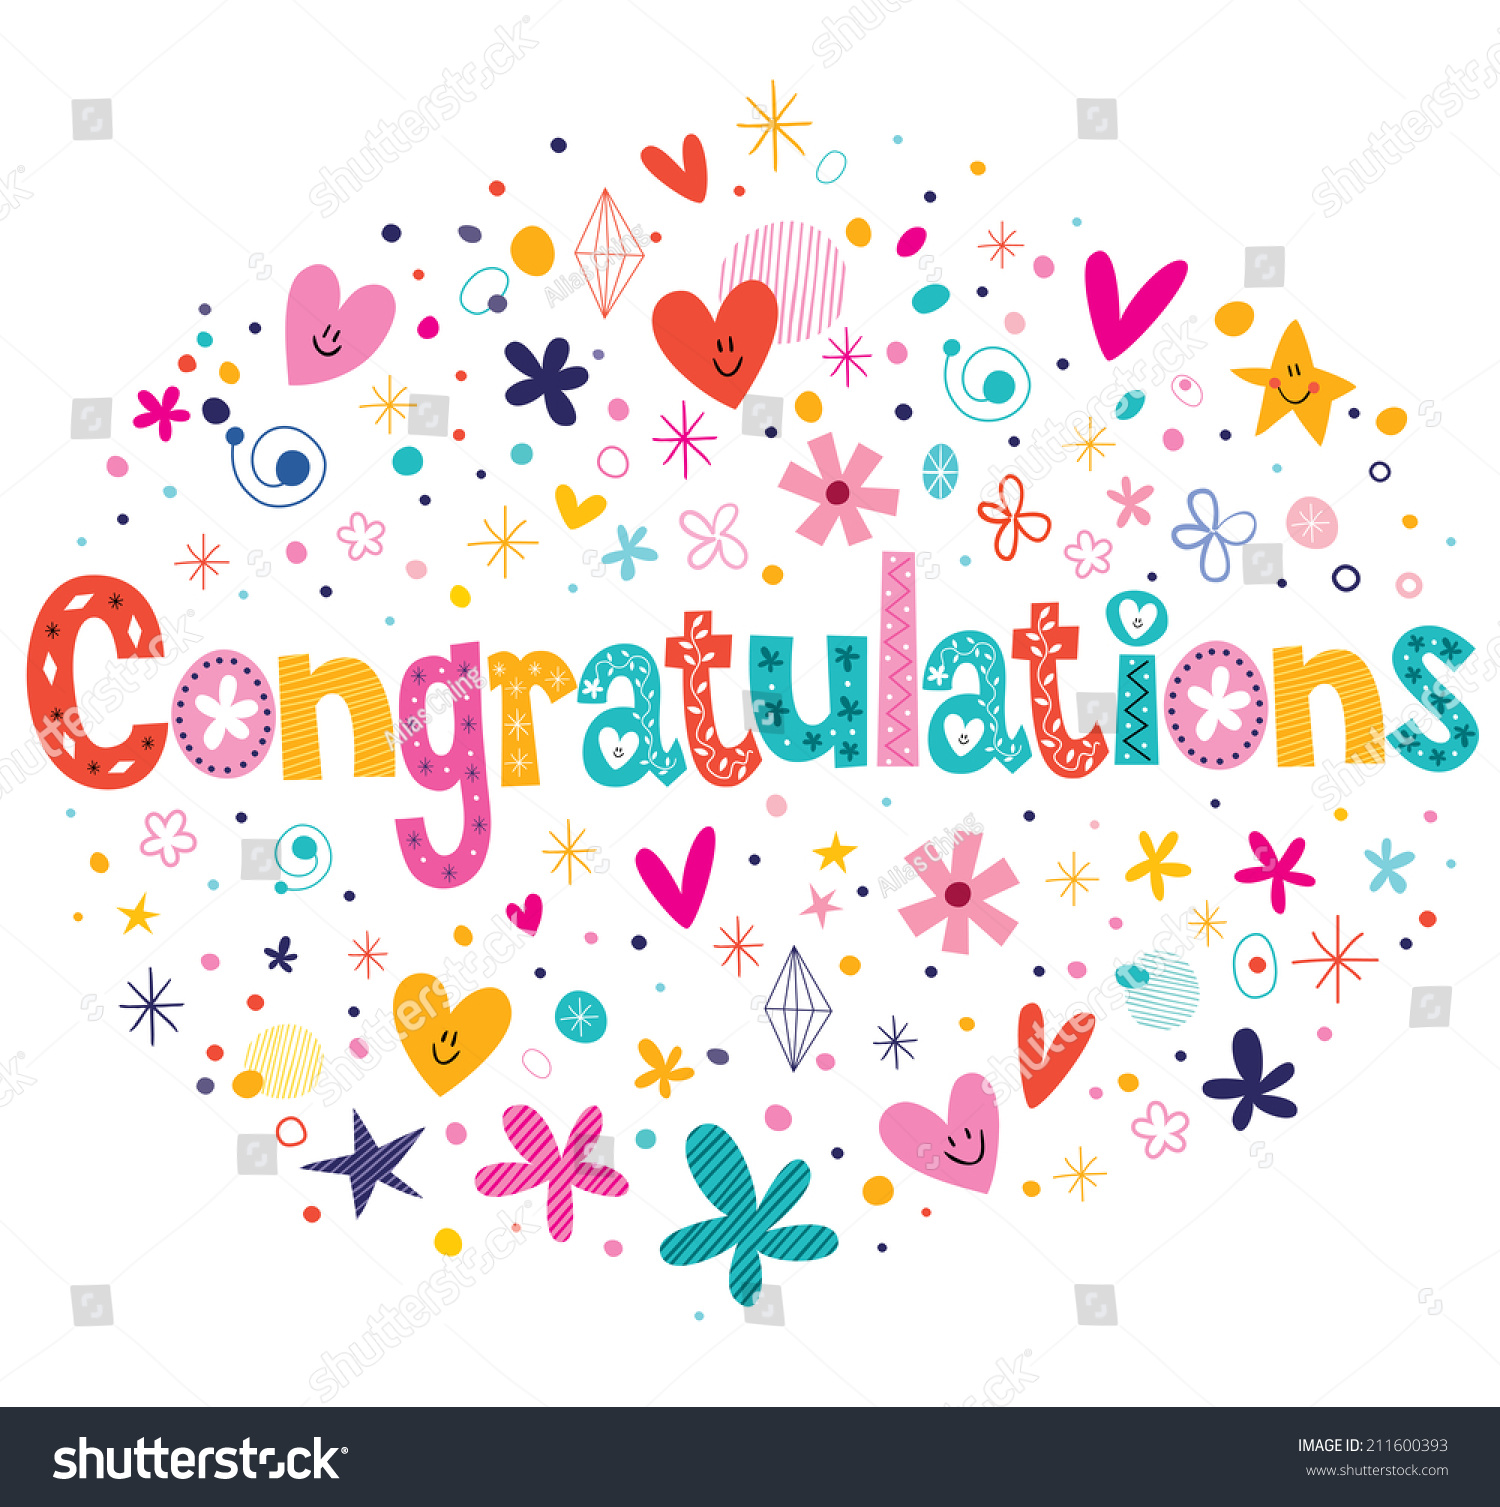 Congratulations Typography Lettering Decorative Text Card Design Stock Vector Illustration 211600393 : Shutterstock